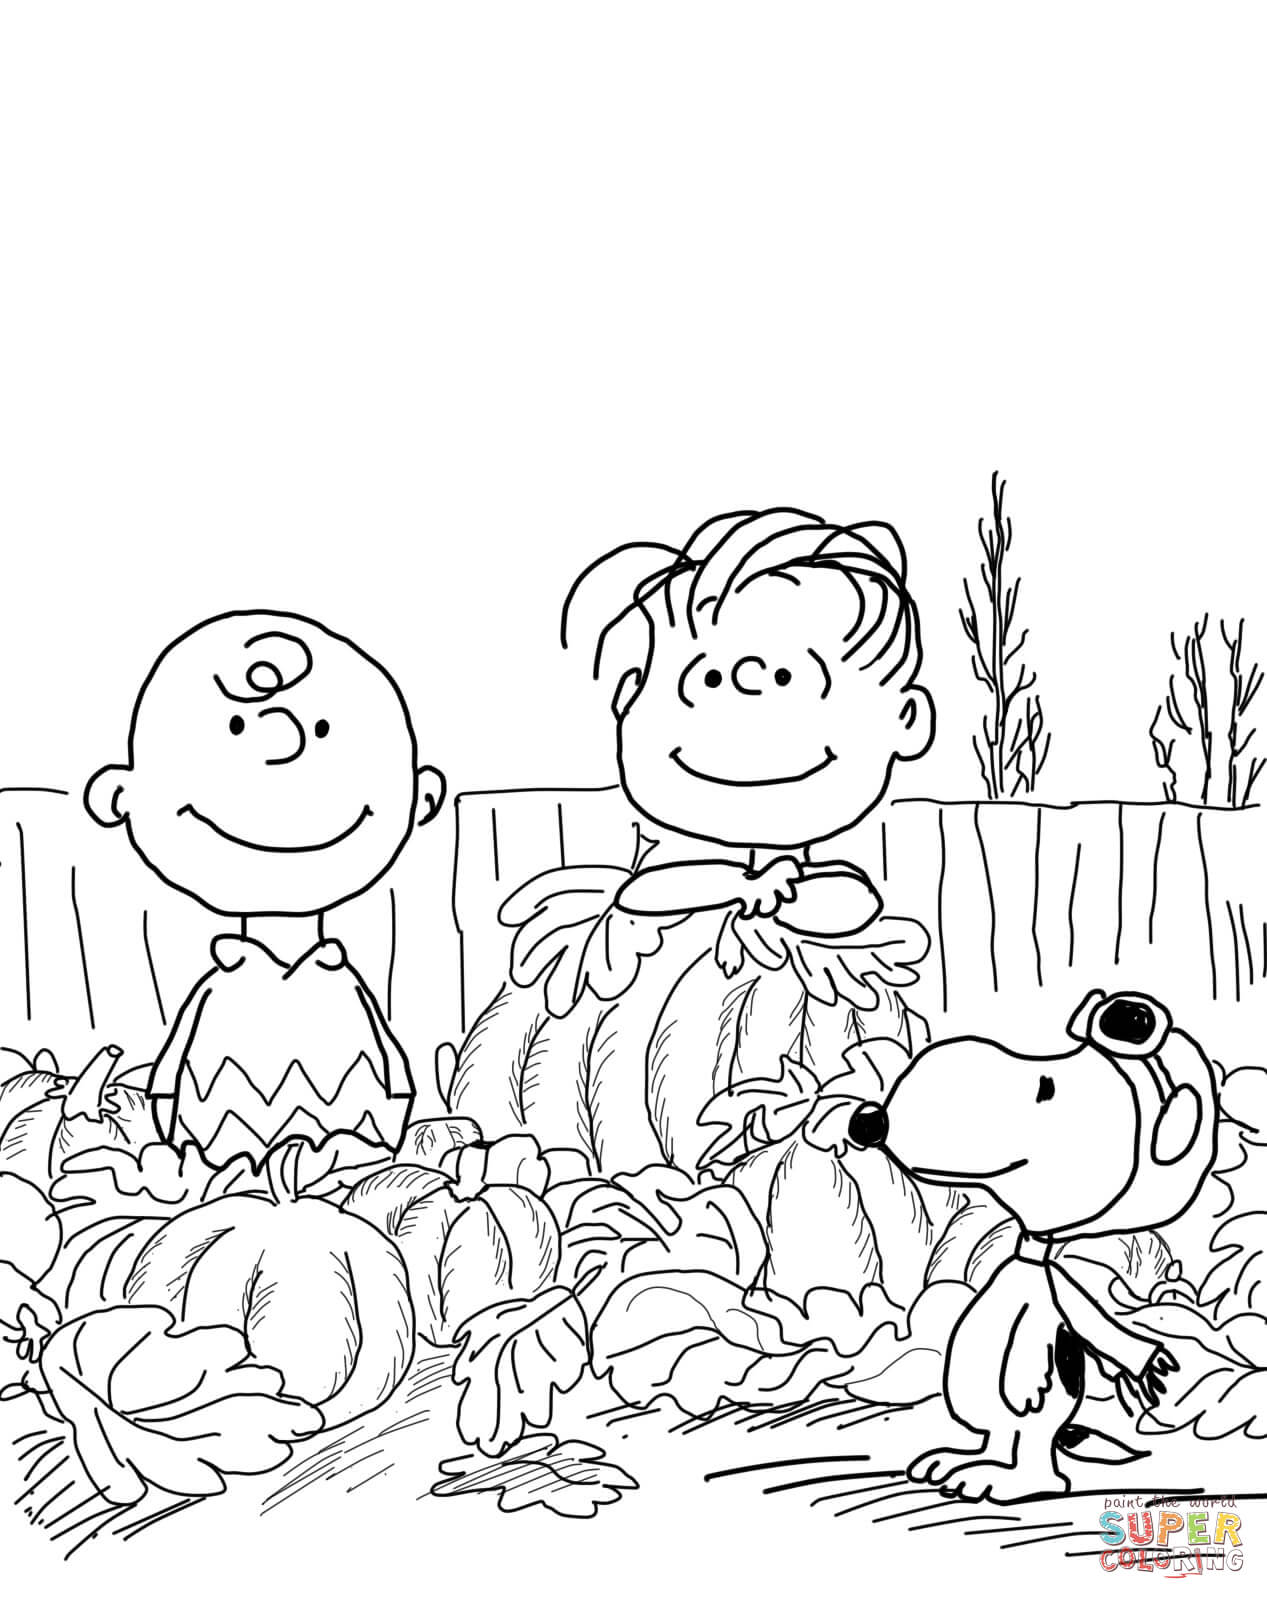 Thanksgiving charlie brown black and white clipart clip art black and white Free Charlie Brown Coloring Pages Thanksgiving, Download ... clip art black and white